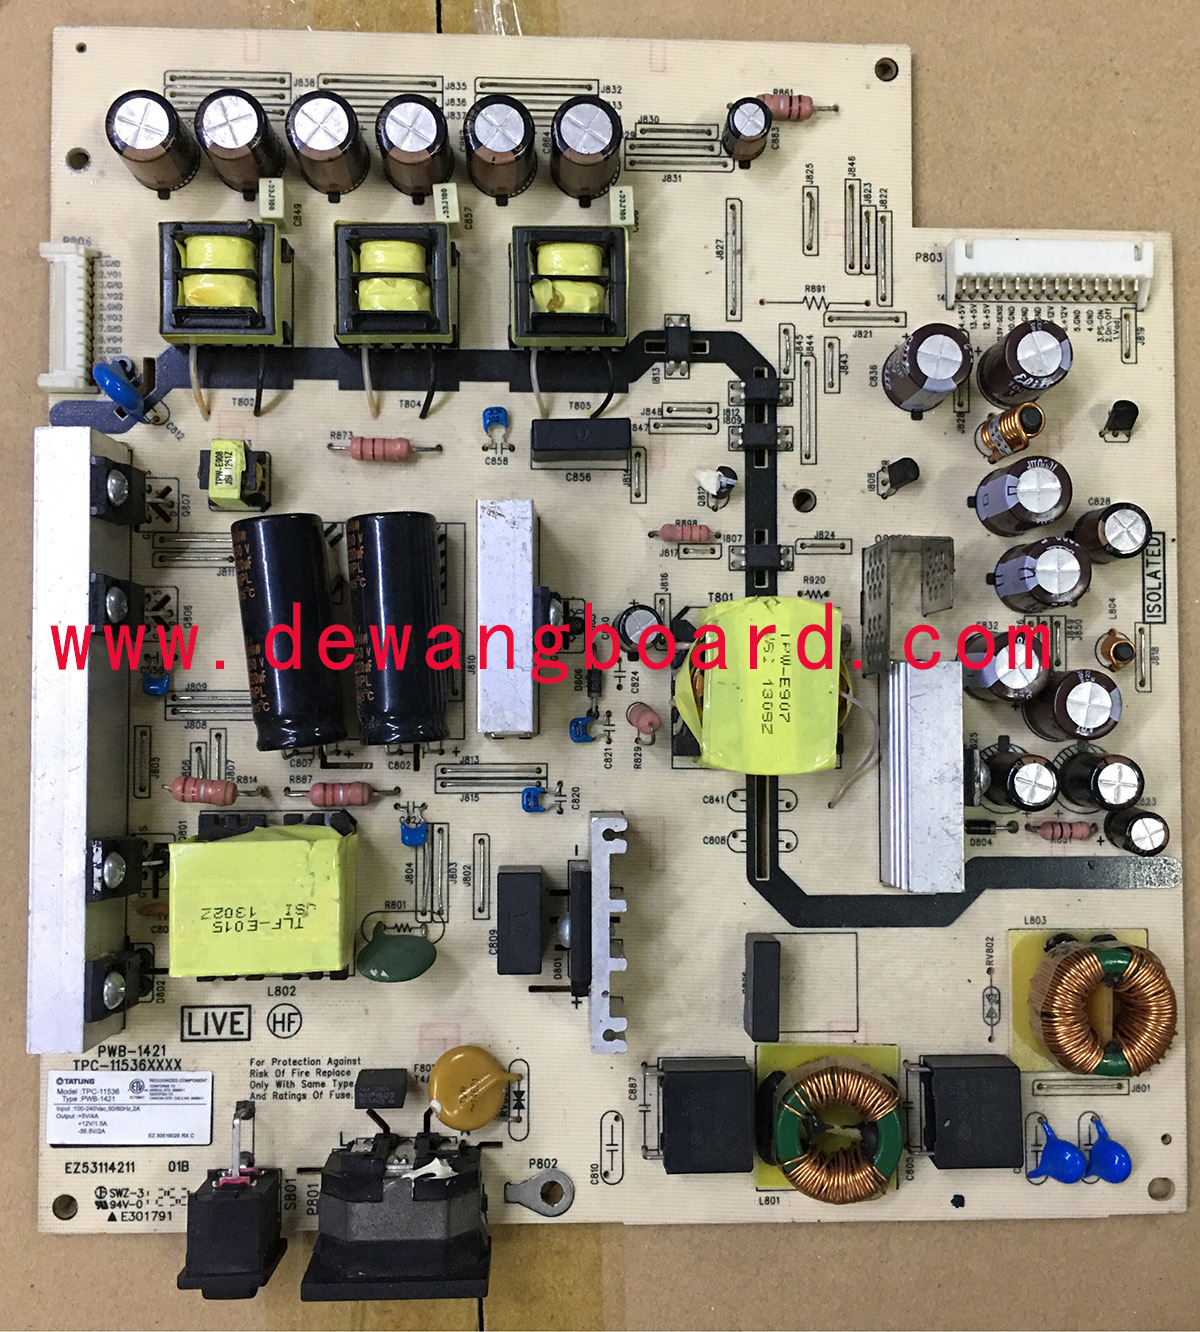 PWB-1421 TPC-11536 HP ZR2740W LED supply power board+backlight